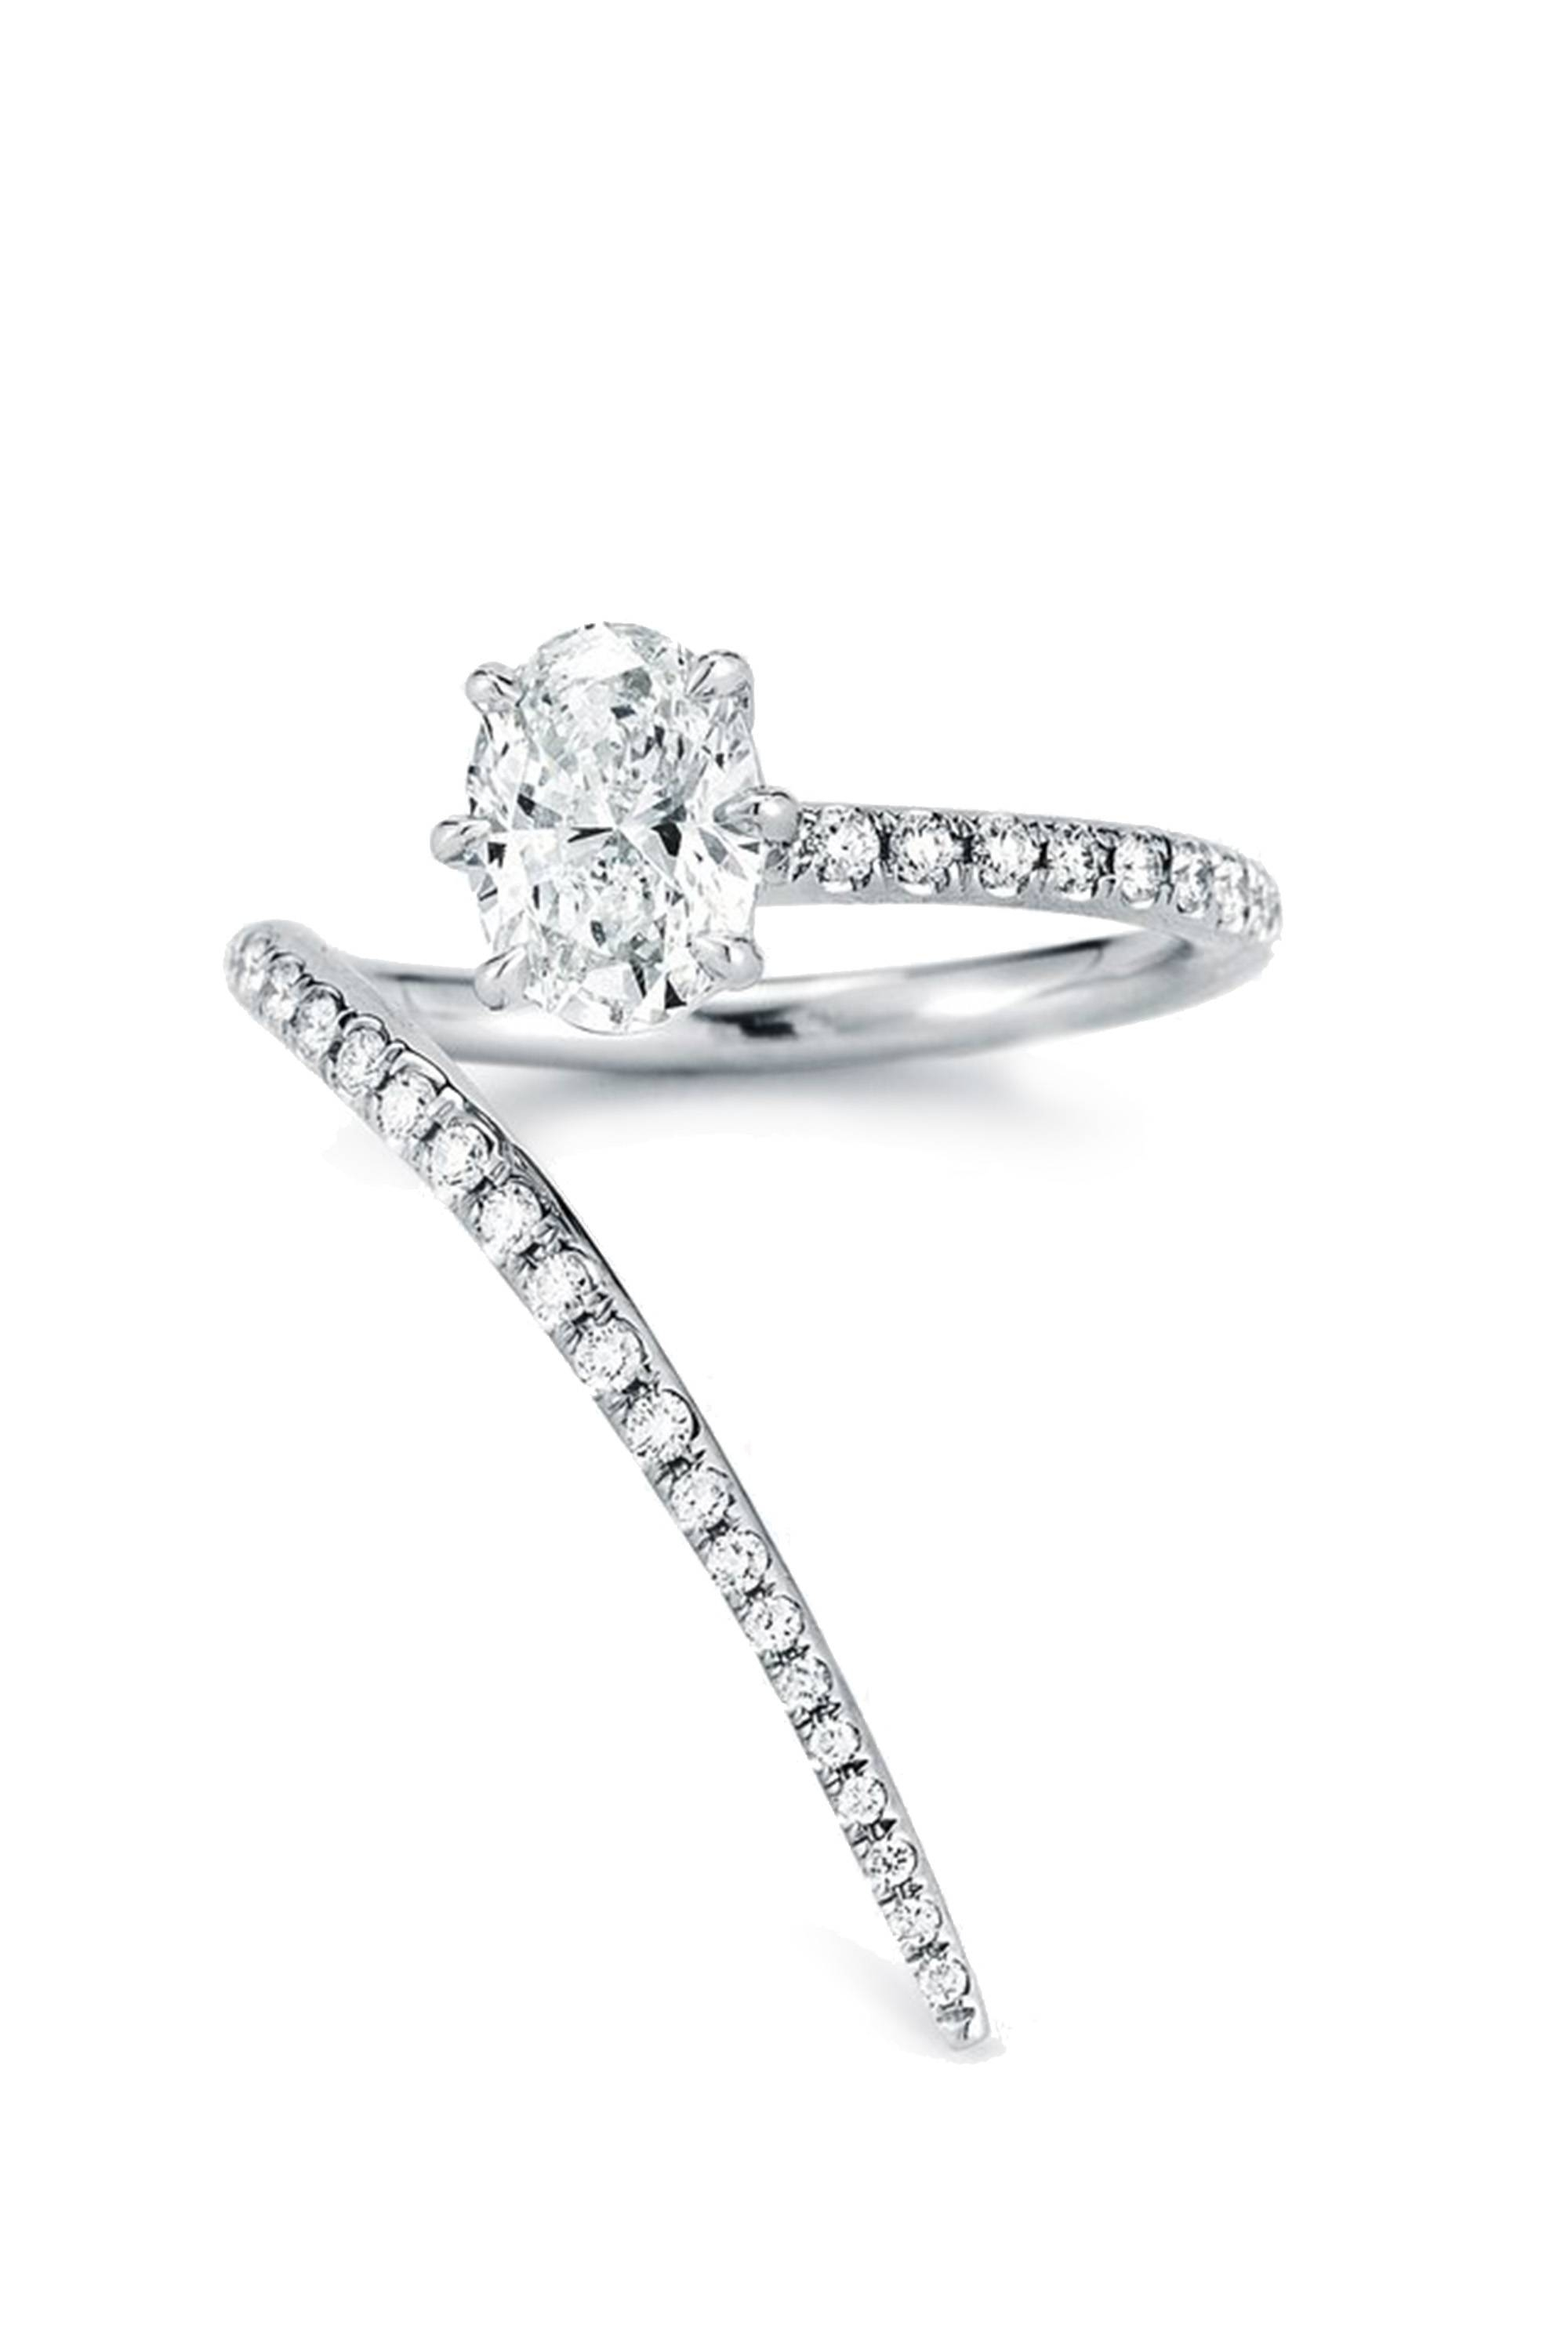 41 Unique Engagement Rings – Beautiful Non Diamond And Unusual Throughout Unusual Diamond Wedding Rings (View 1 of 15)